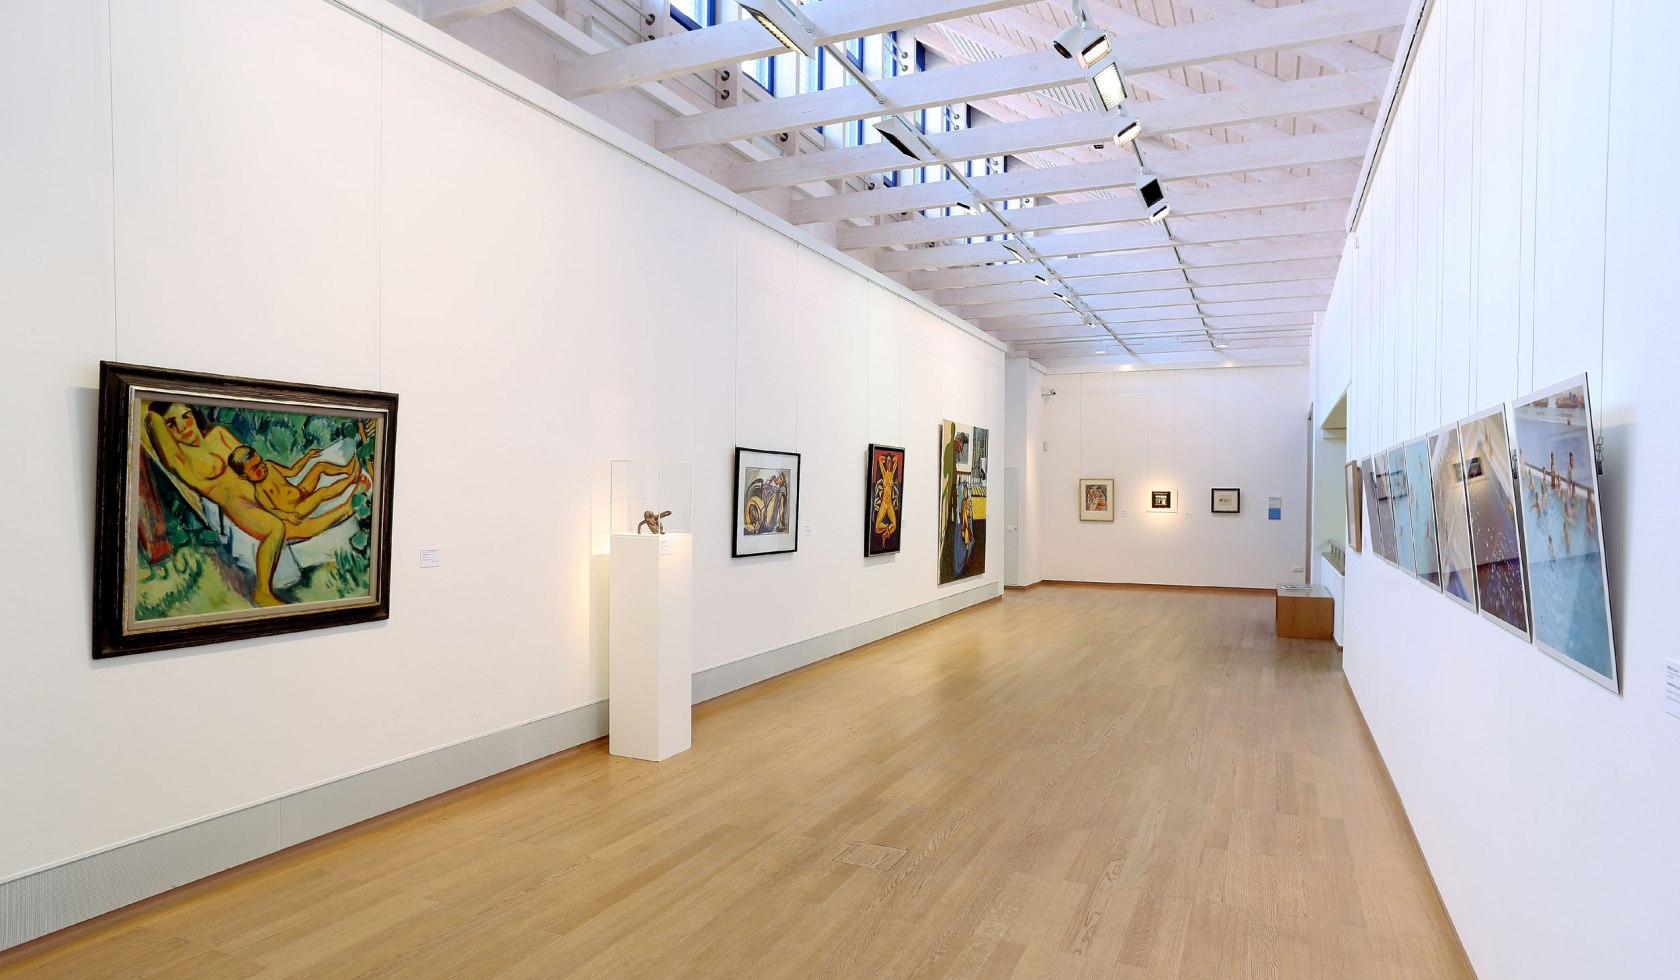 Art Gallery Emden Inside with Collection